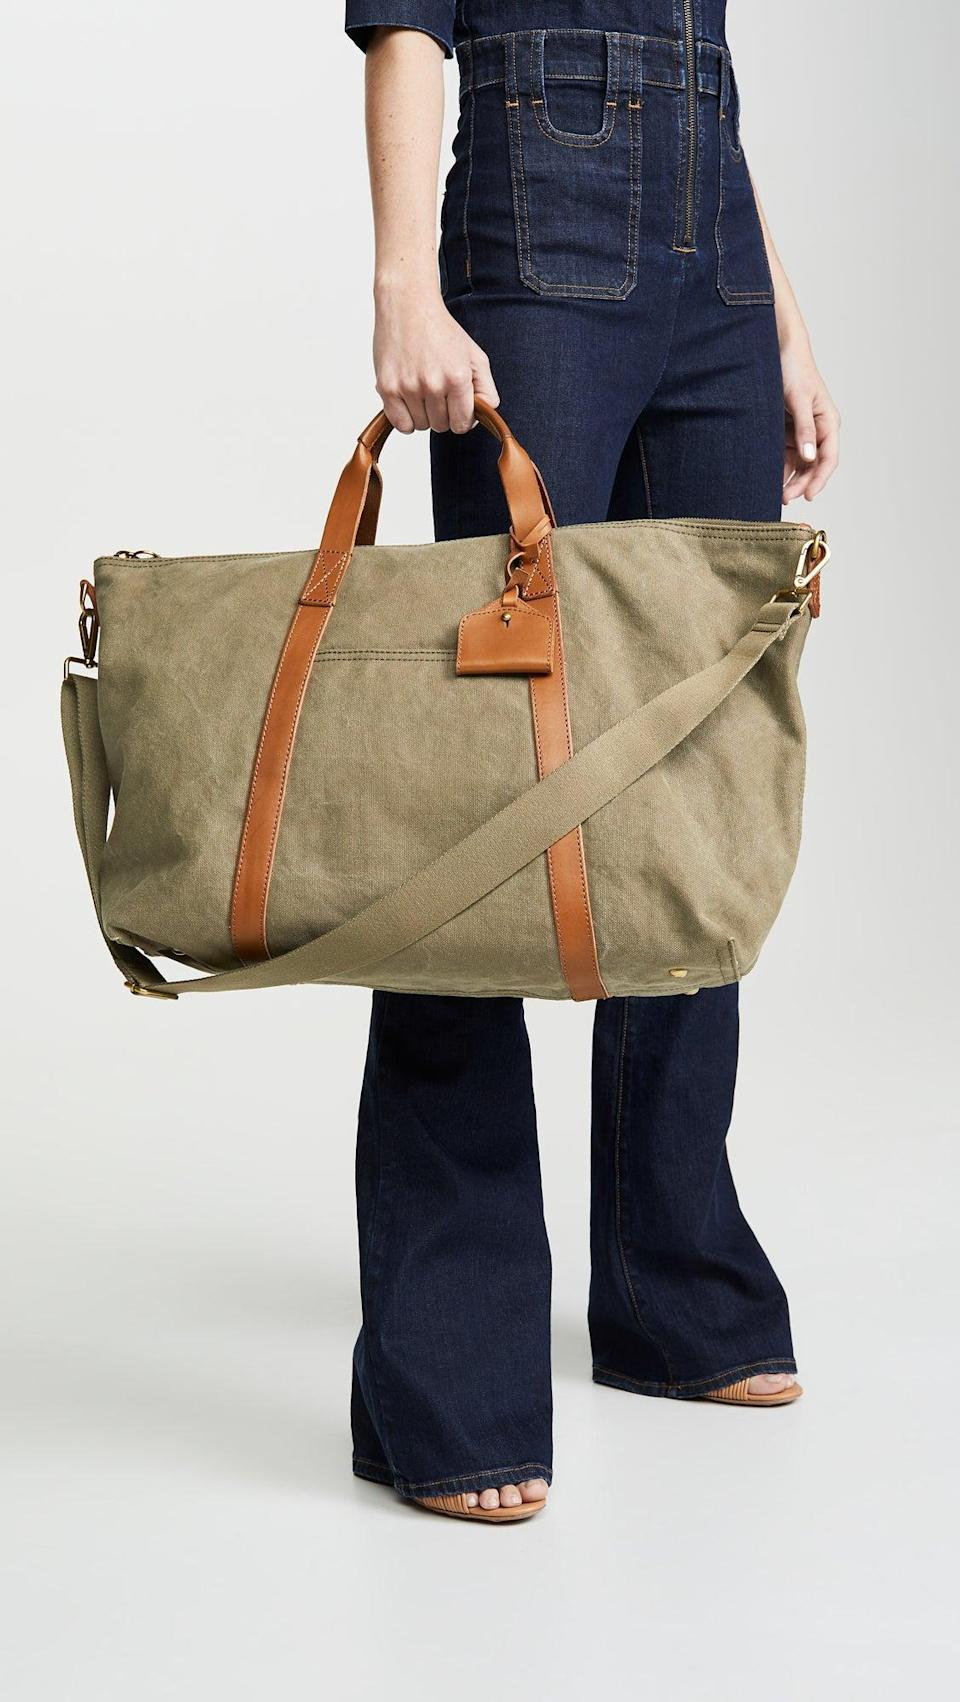 """<h3><a href=""""https://www.madewell.com/the-essential-weekender-bag-99105448613.html"""" rel=""""nofollow noopener"""" target=""""_blank"""" data-ylk=""""slk:Madewell Canvas Overnight Bag"""" class=""""link rapid-noclick-resp"""">Madewell Canvas Overnight Bag</a></h3><br>Madewell's version of a weekender combines a tote with a duffel and dresses it in canvas with leather trim for one stylish, roomy, and tote-worthy travel bag. <br><br><strong>Madewell</strong> Canvas Overnight Bag, $, available at <a href=""""https://go.skimresources.com/?id=30283X879131&url=https%3A%2F%2Fwww.madewell.com%2Fthe-essential-weekender-bag-99105448613.html"""" rel=""""nofollow noopener"""" target=""""_blank"""" data-ylk=""""slk:Madewell"""" class=""""link rapid-noclick-resp"""">Madewell</a>"""